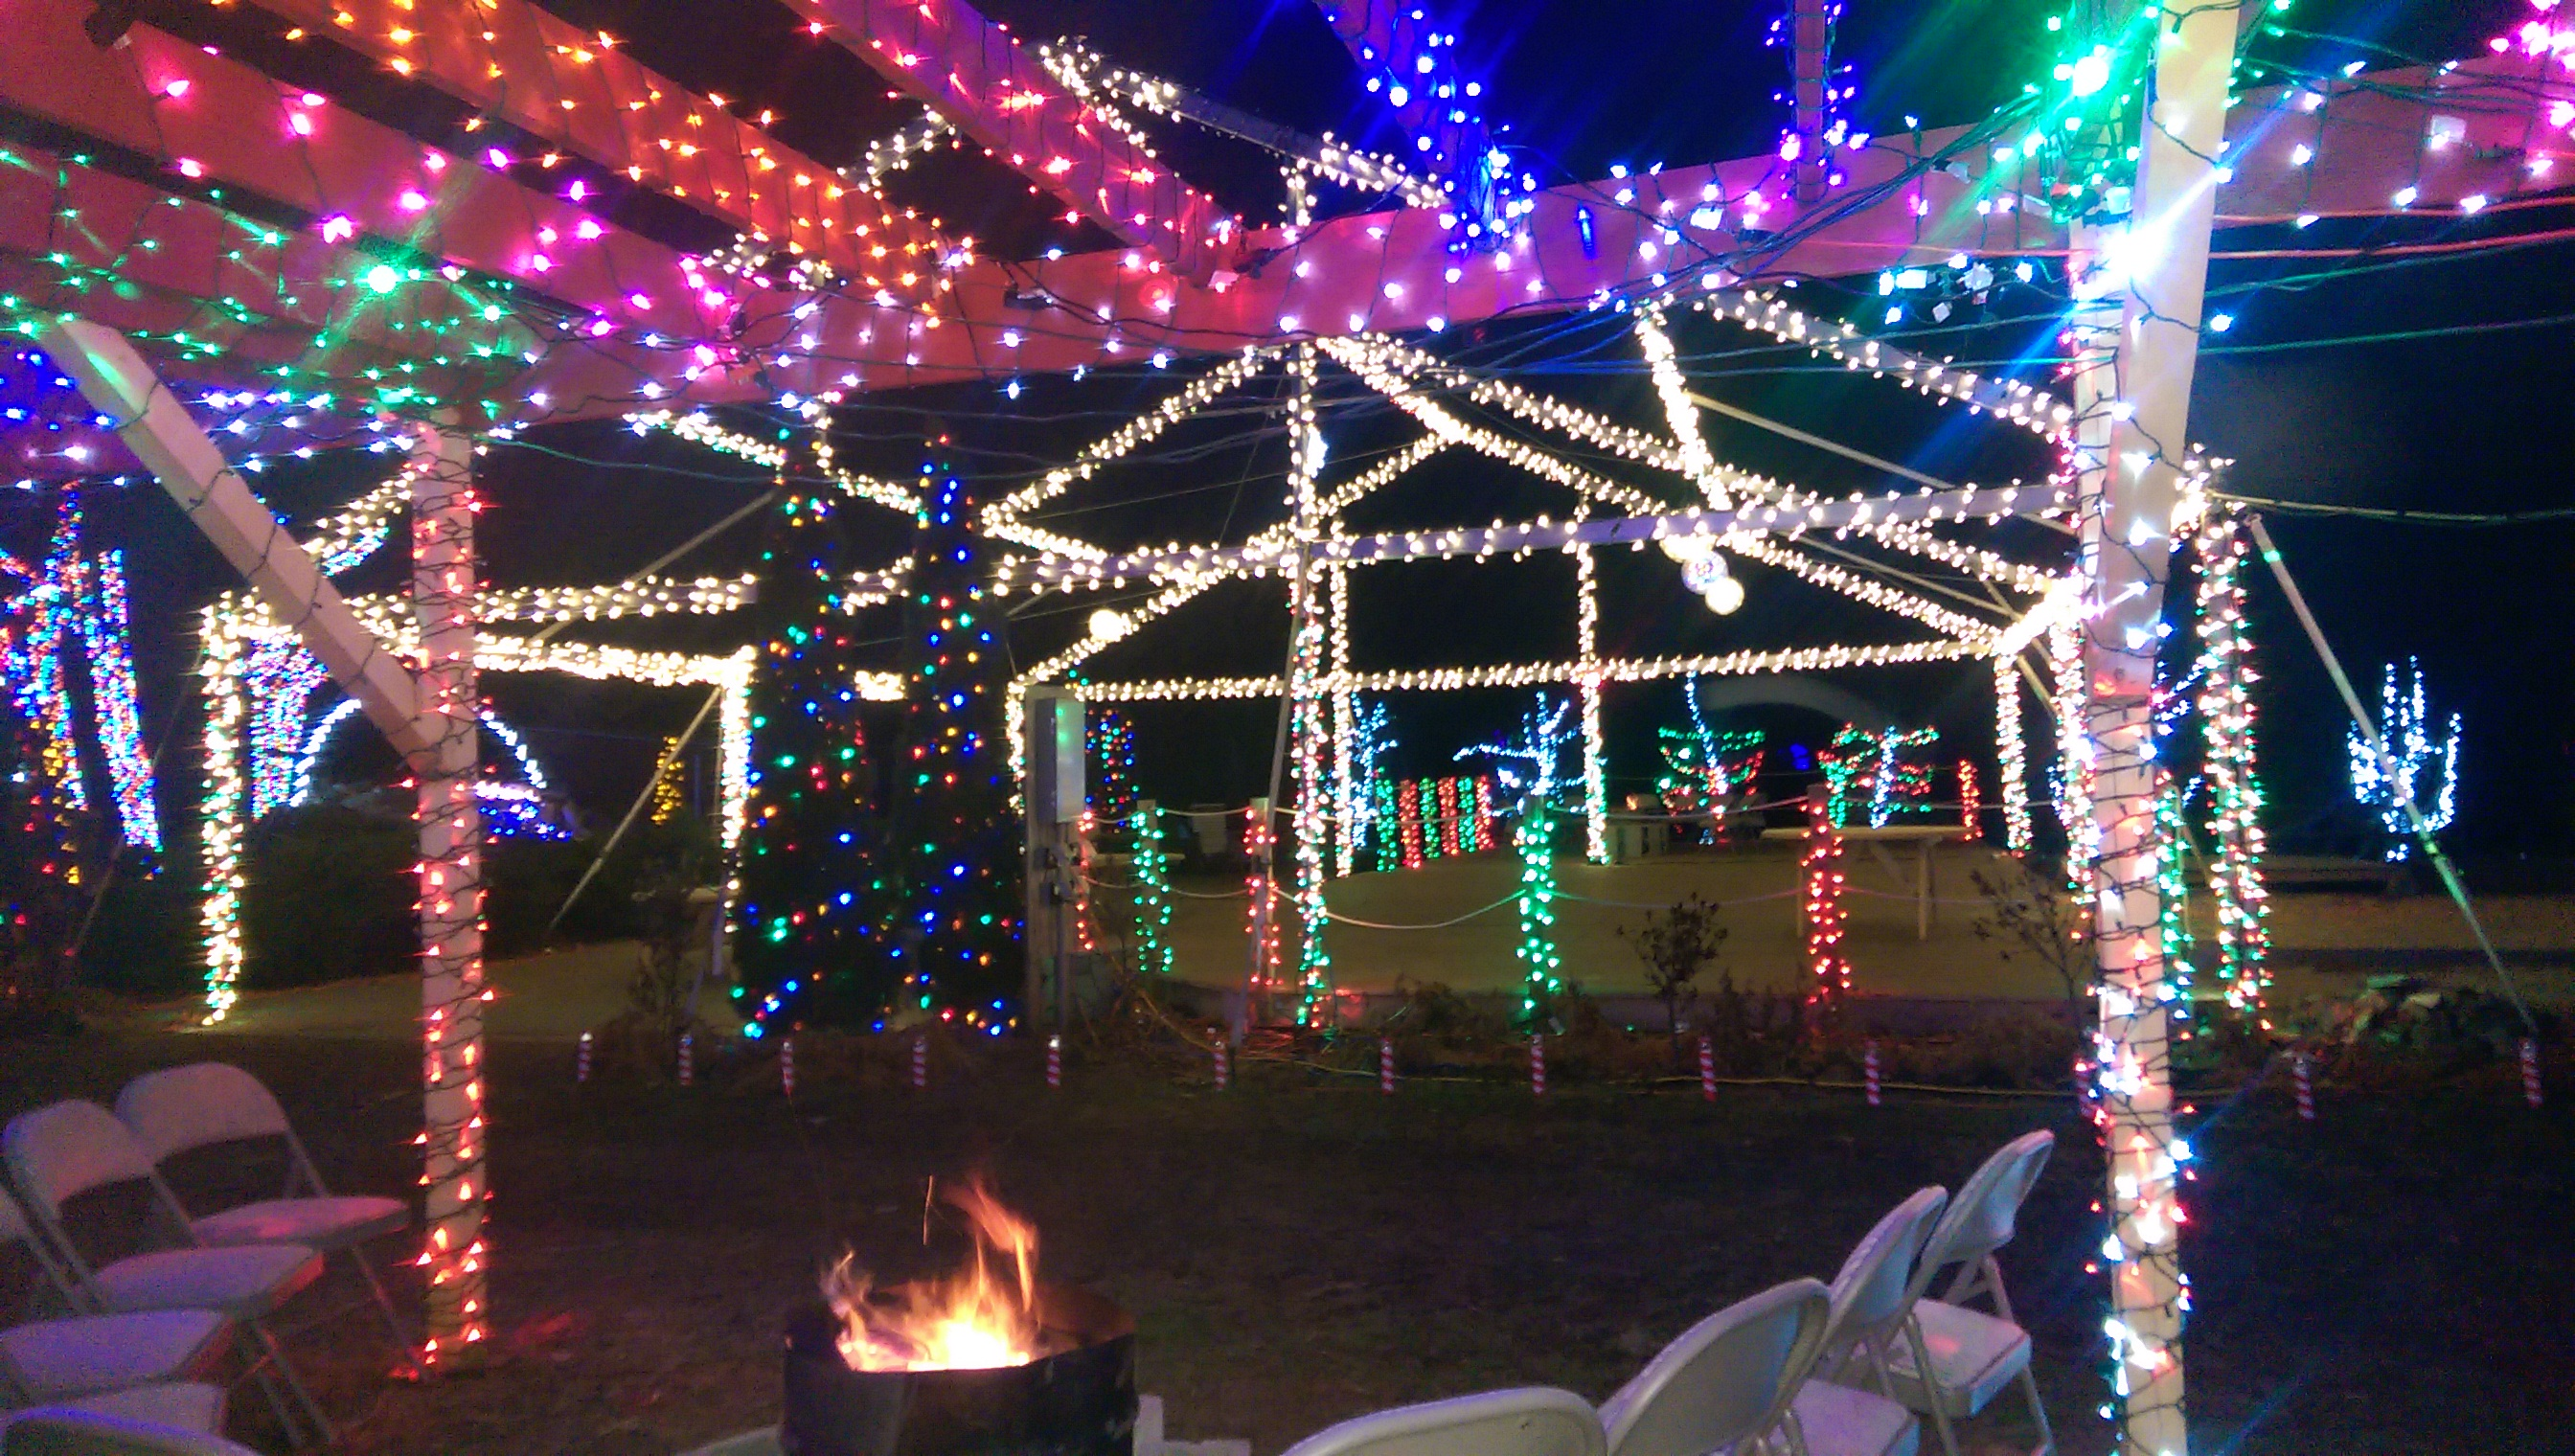 december 3 2015 600 pm 900 pm thanksgiving day christmas light show